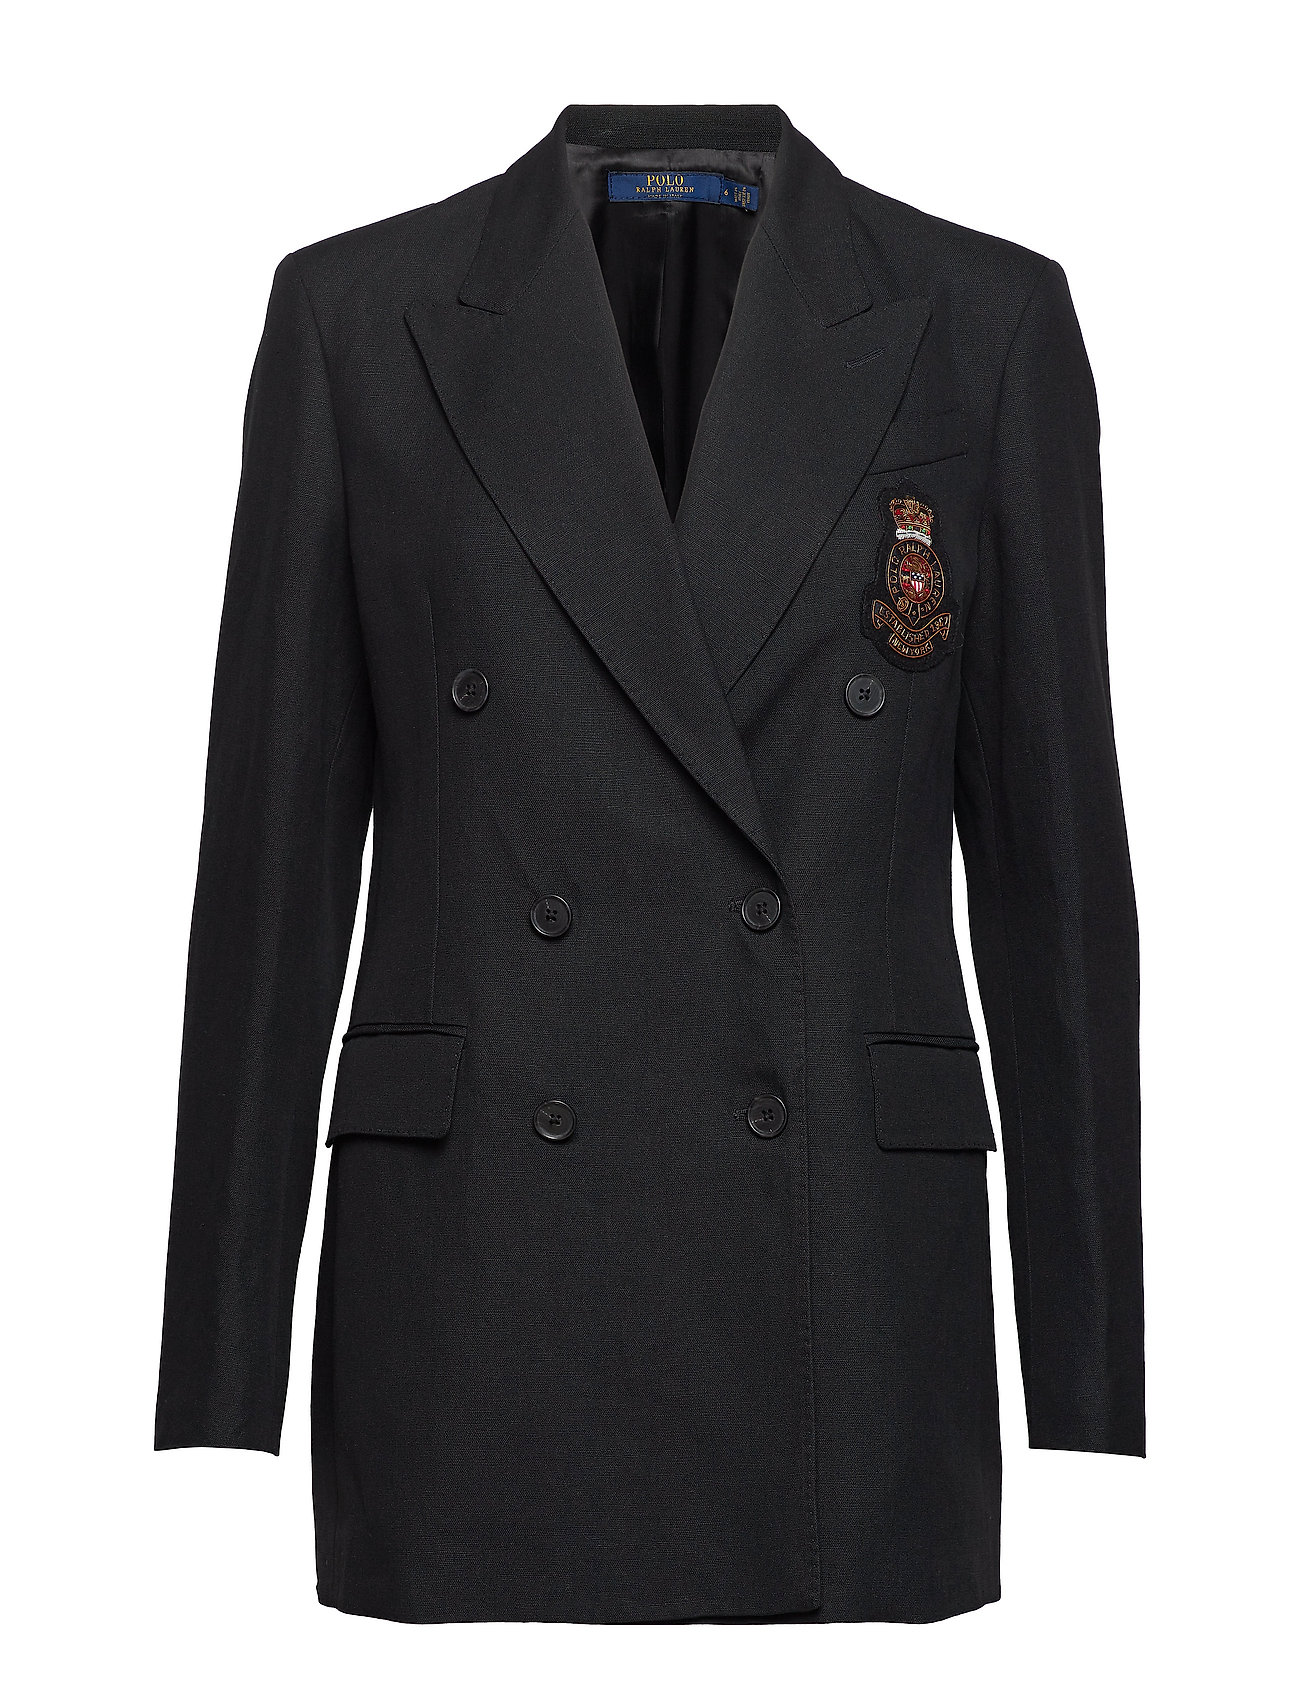 Polo Ralph Lauren Crest Double-Breasted Blazer